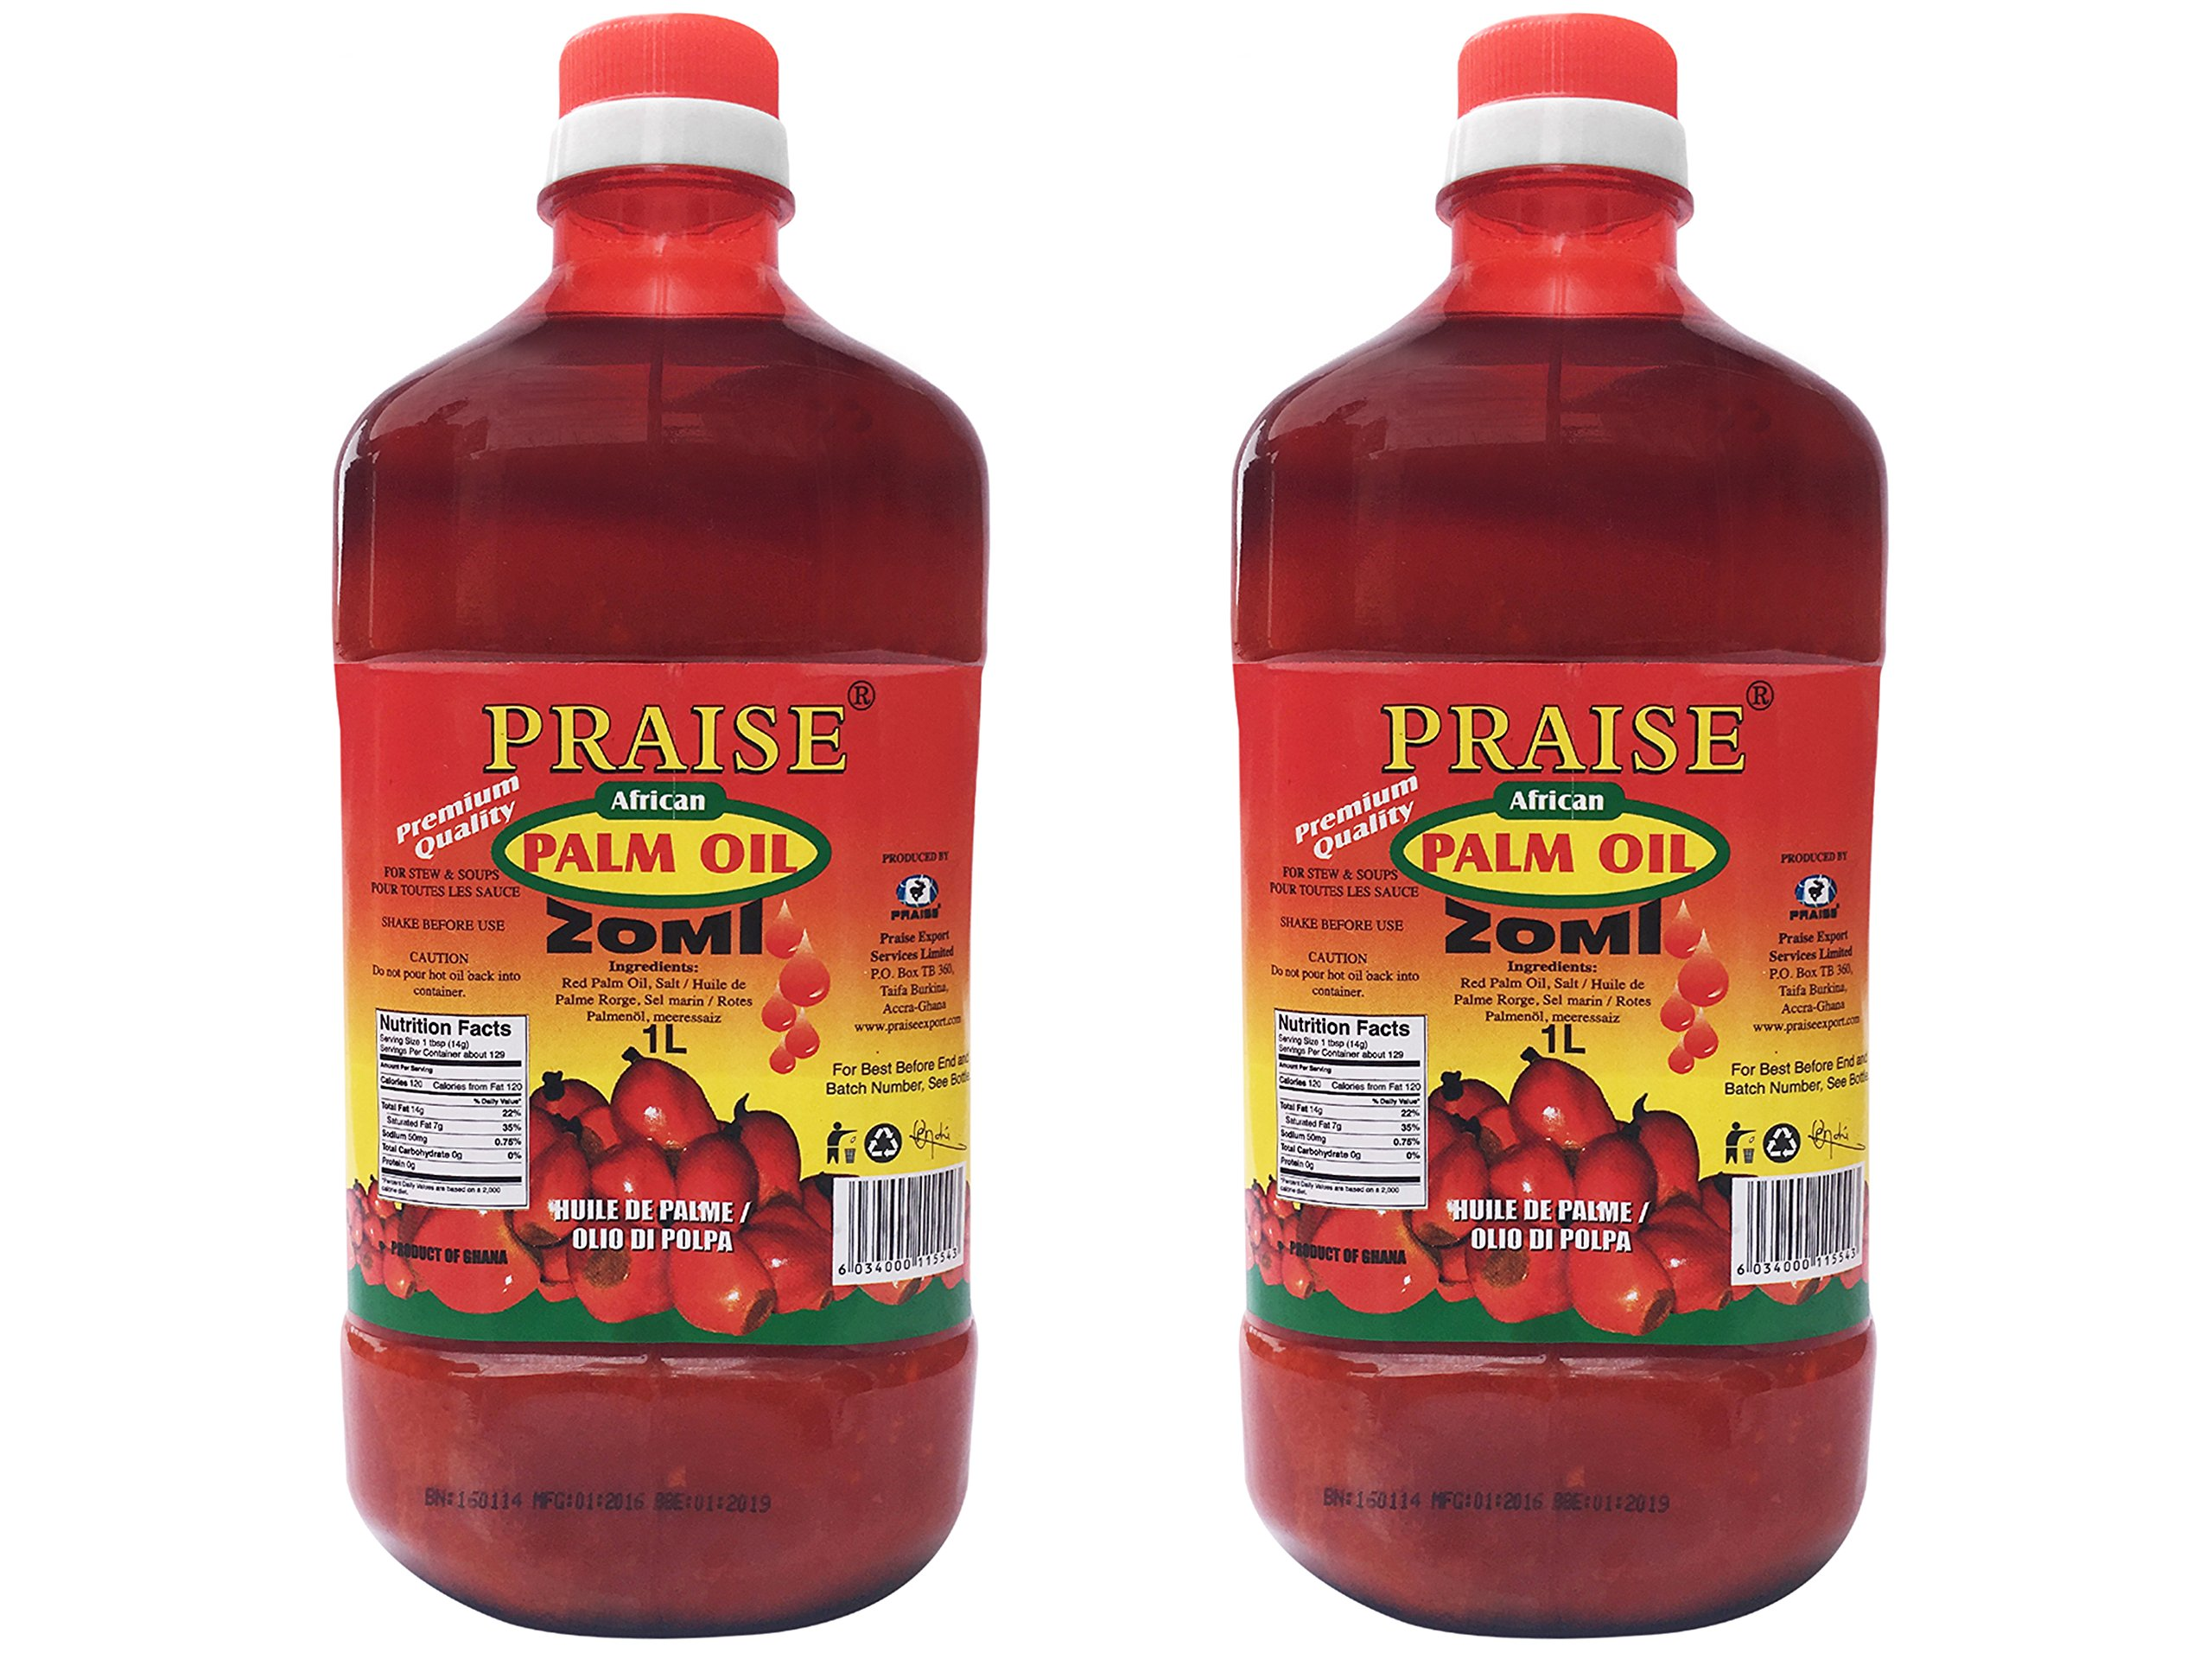 Praise Red Palm Oil, 1- Liter (Pack of 2) - Zomi by Praise